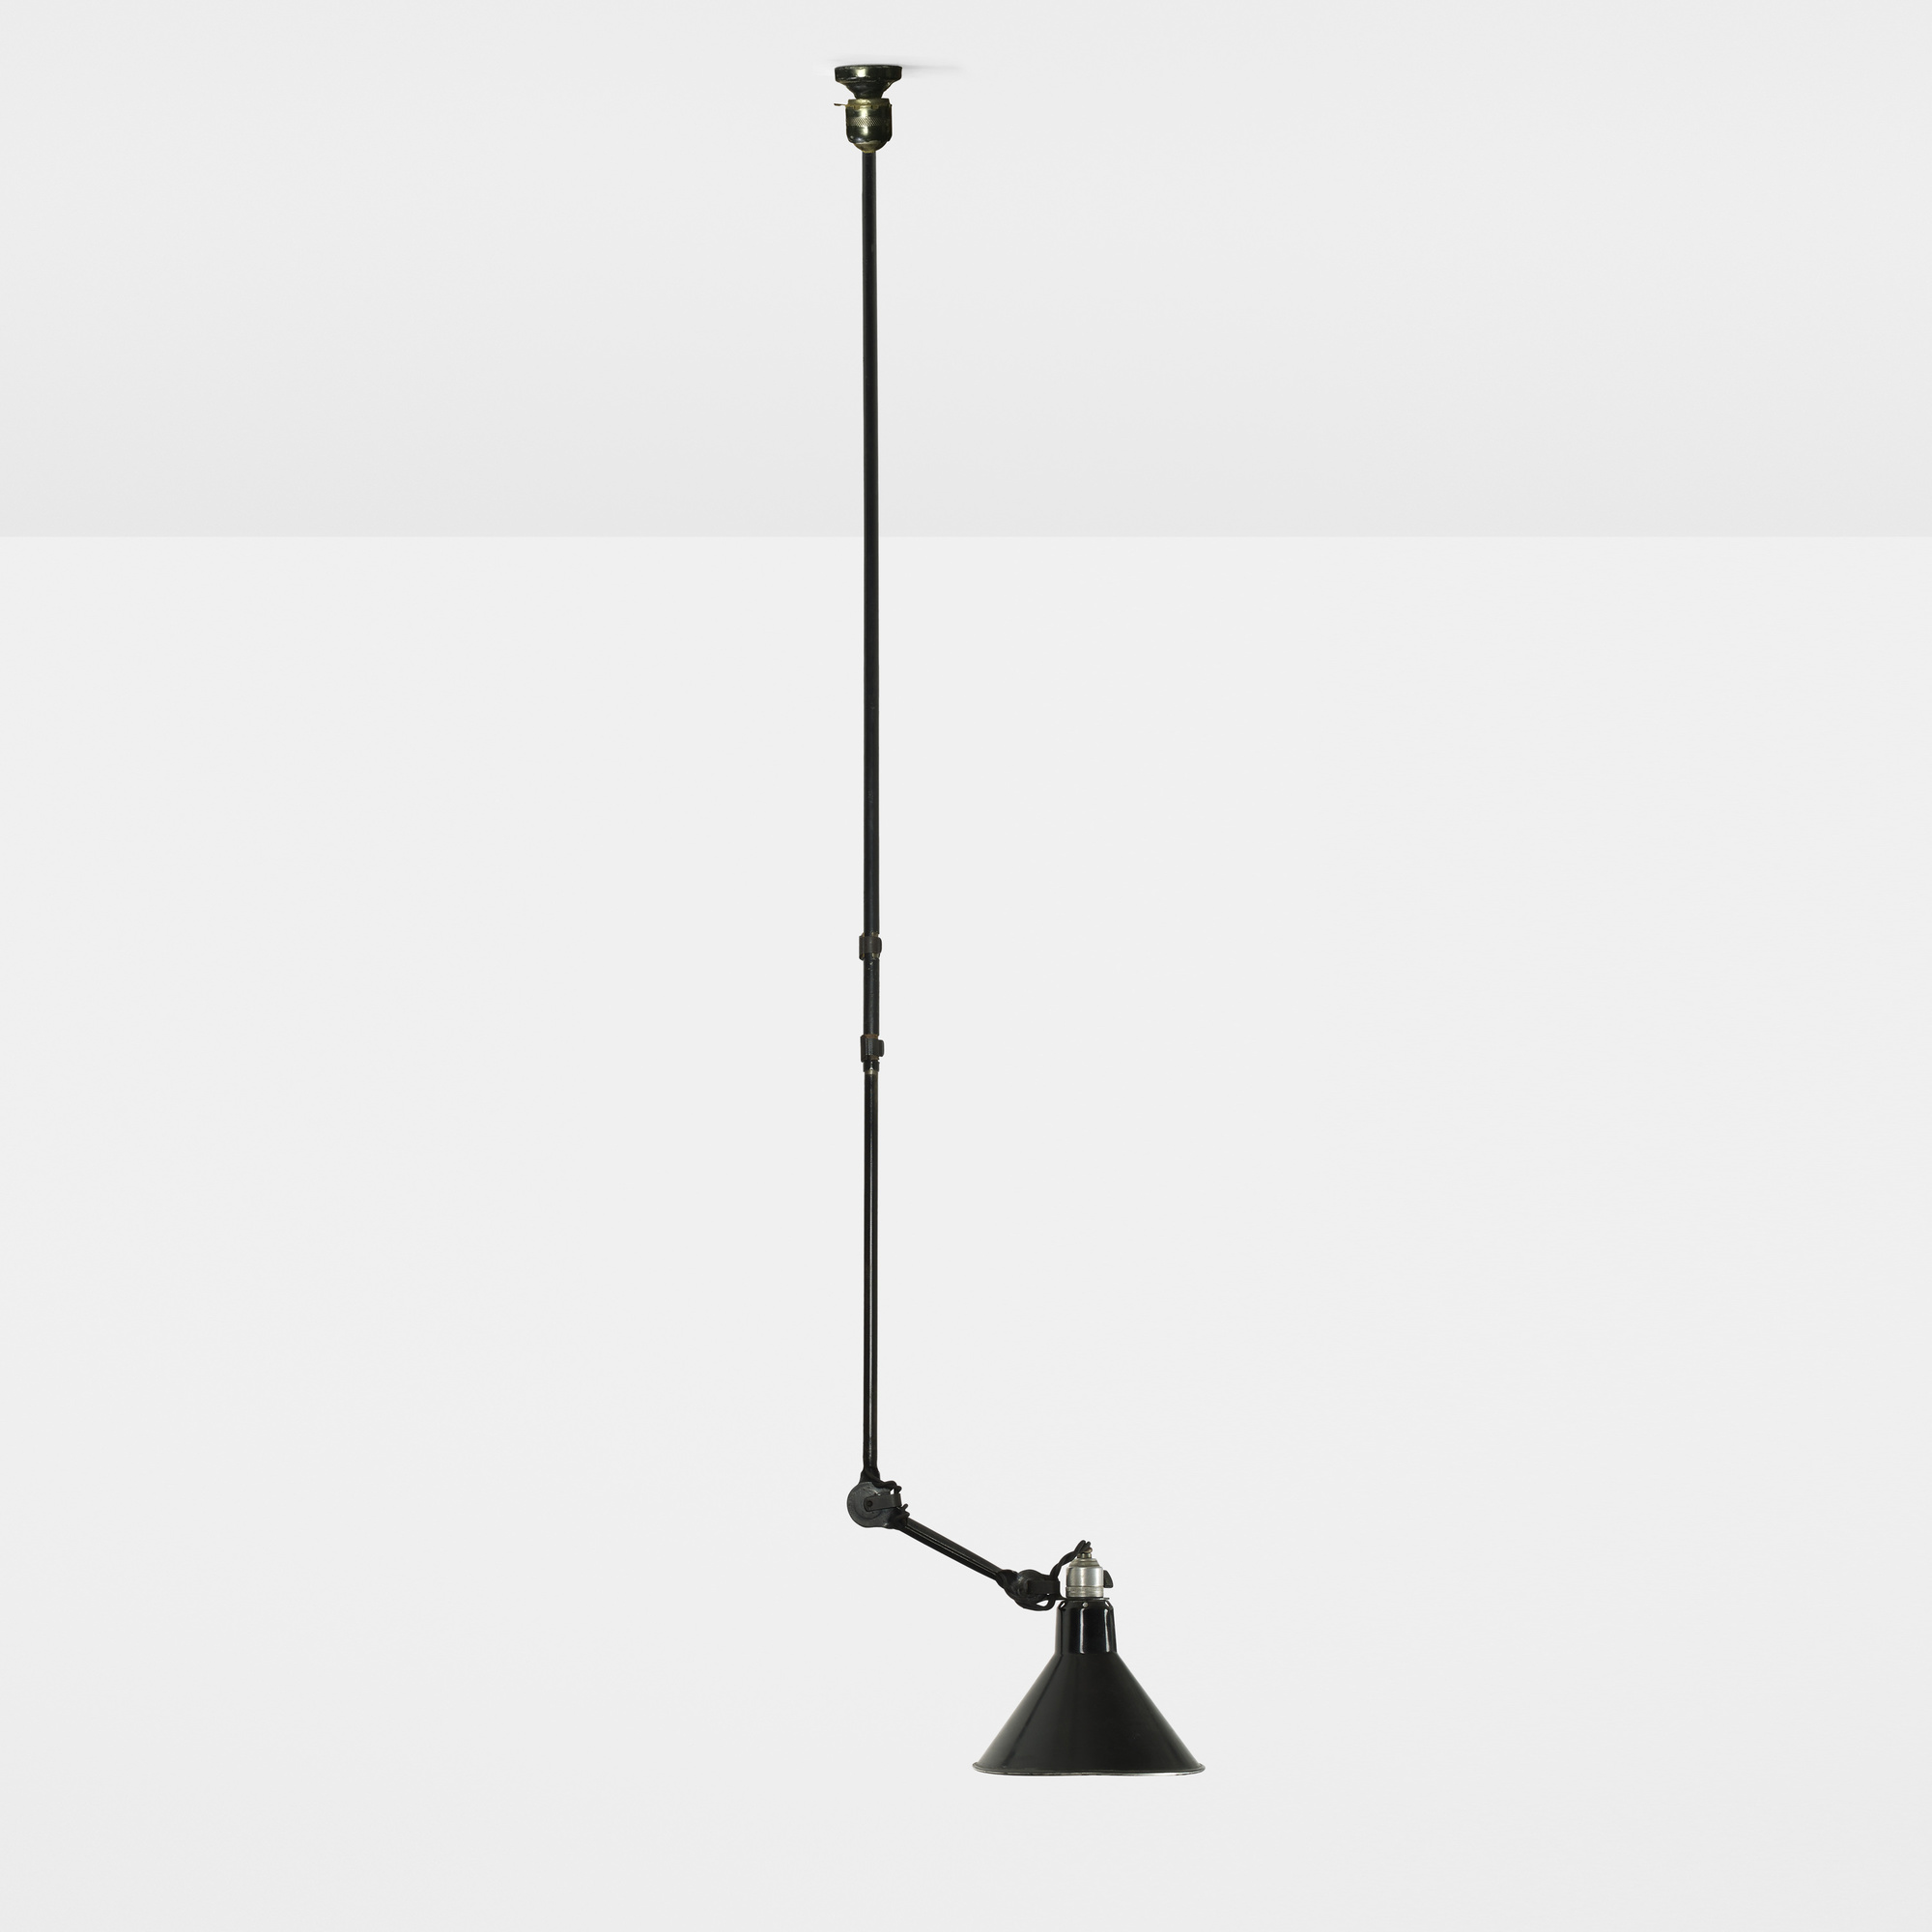 134: Bernard-Albin Gras / hanging lamp, model 302 (1 of 1)